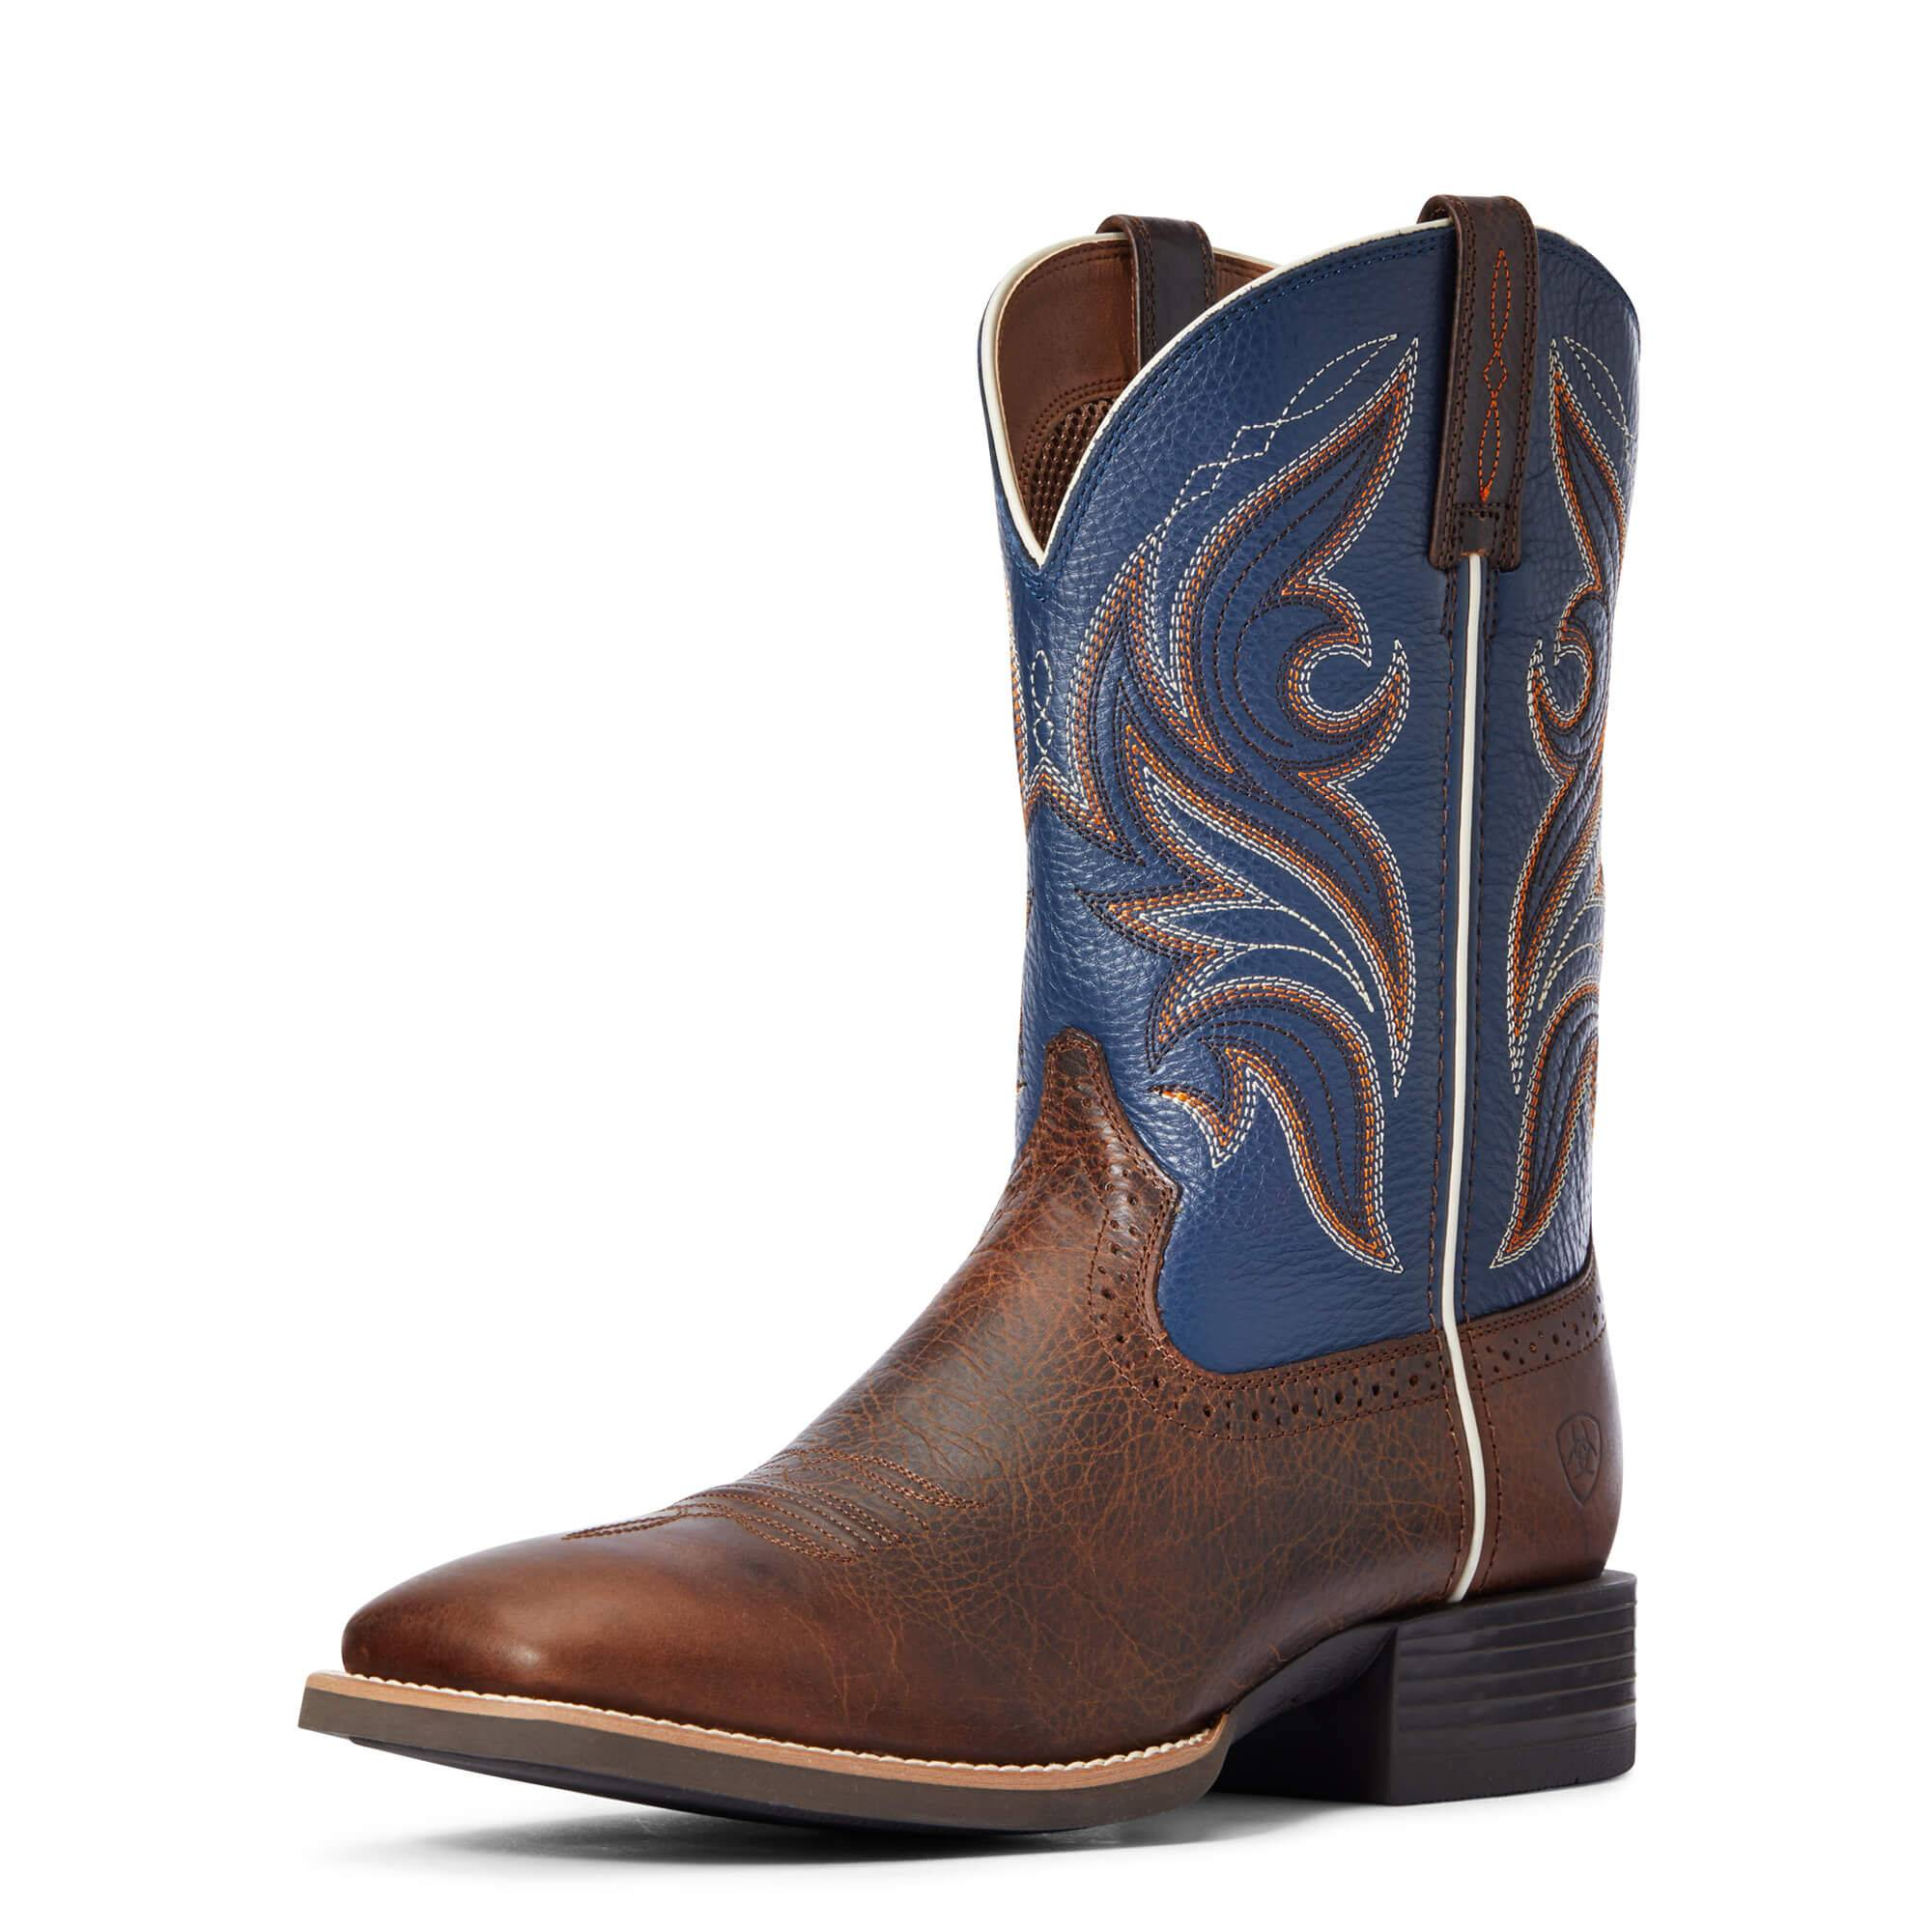 Ariat Men's Sport Knockout Western Boots in Dark Whiskey Leather, Size 8.5 EE / Wide by Ariat